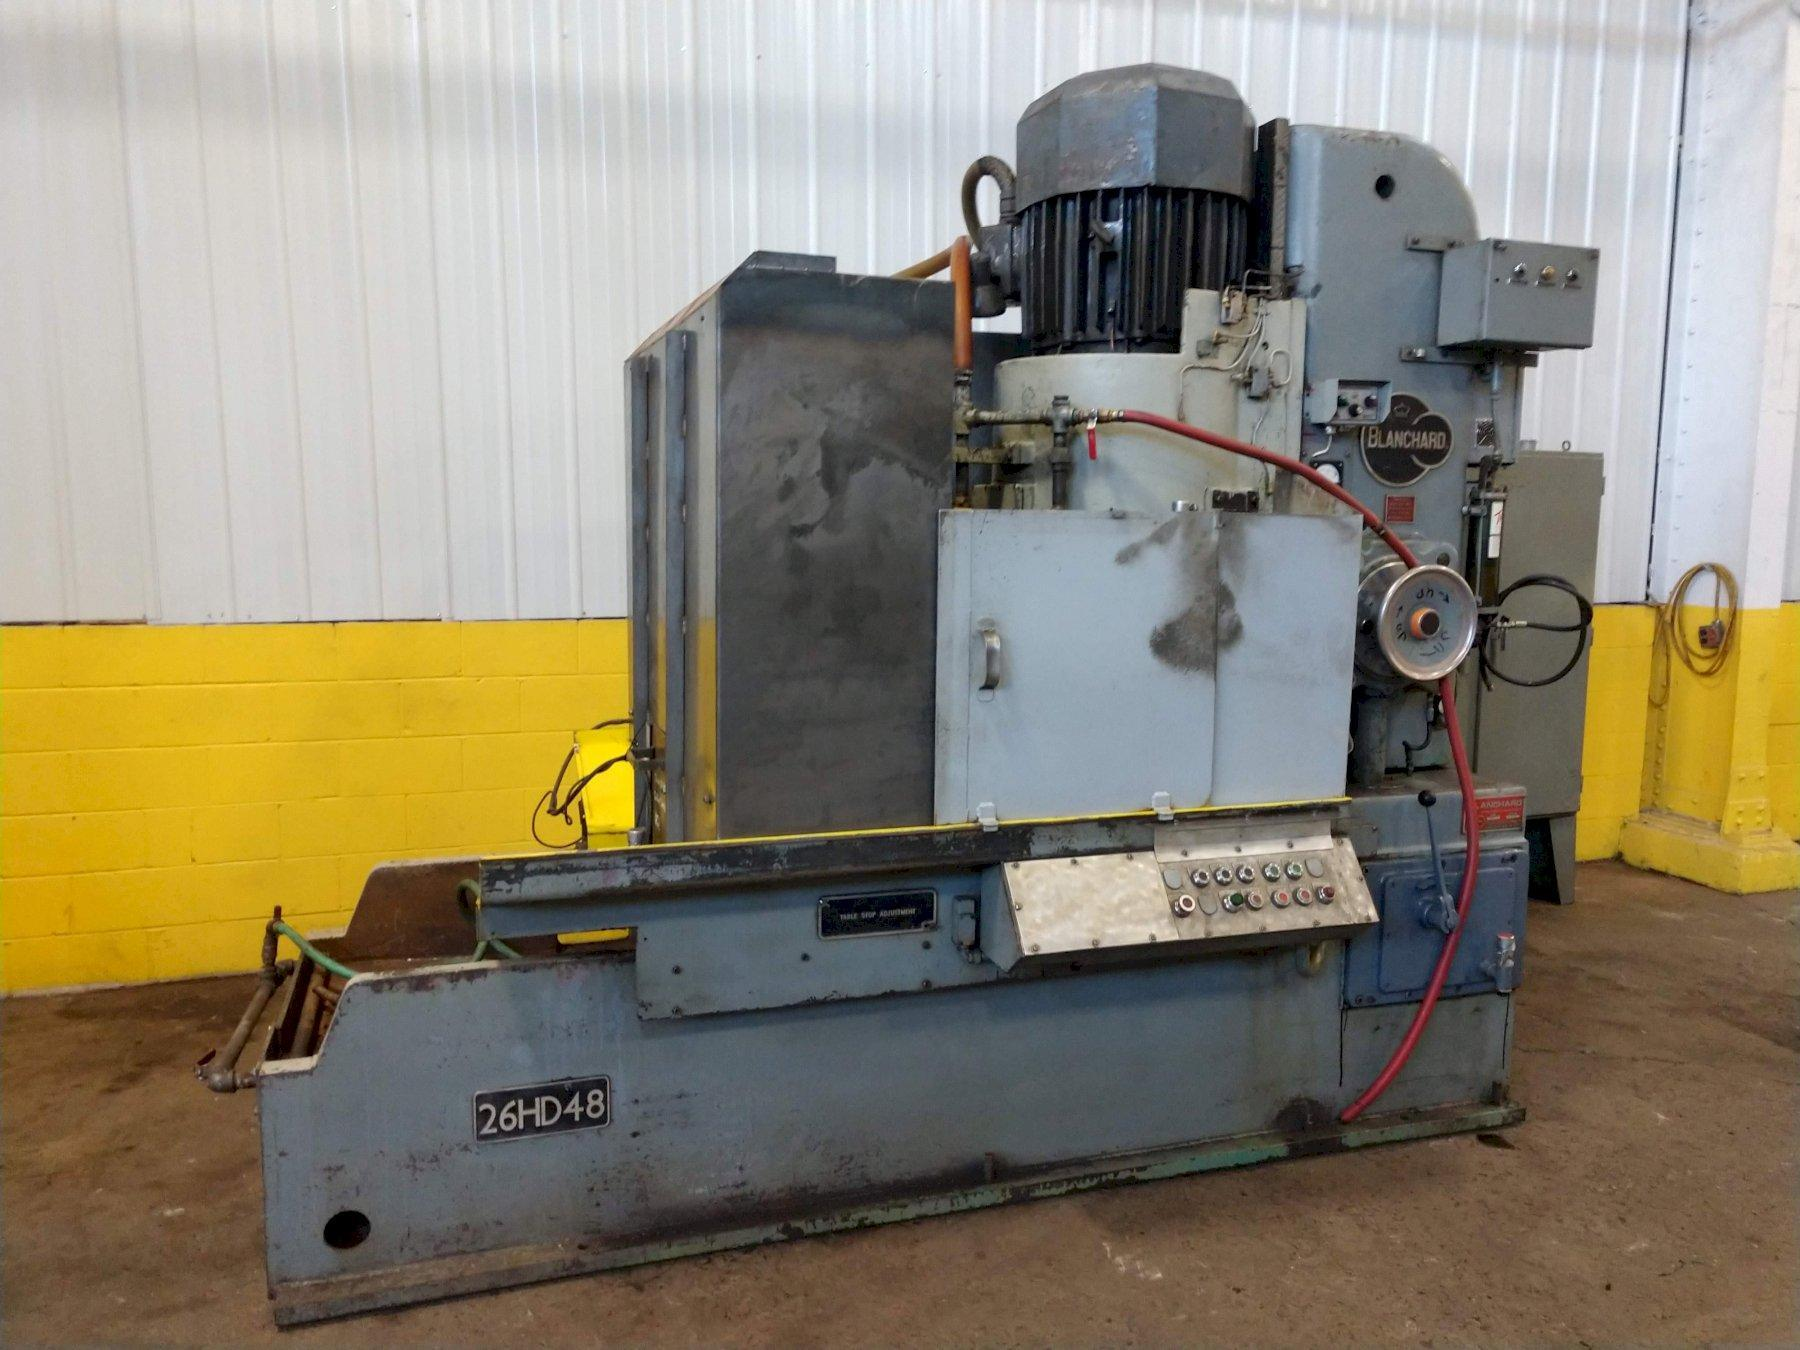 "48"" X 100 HP BLANCHARD MODEL #26HD48 GRINDER: STOCK #12968"